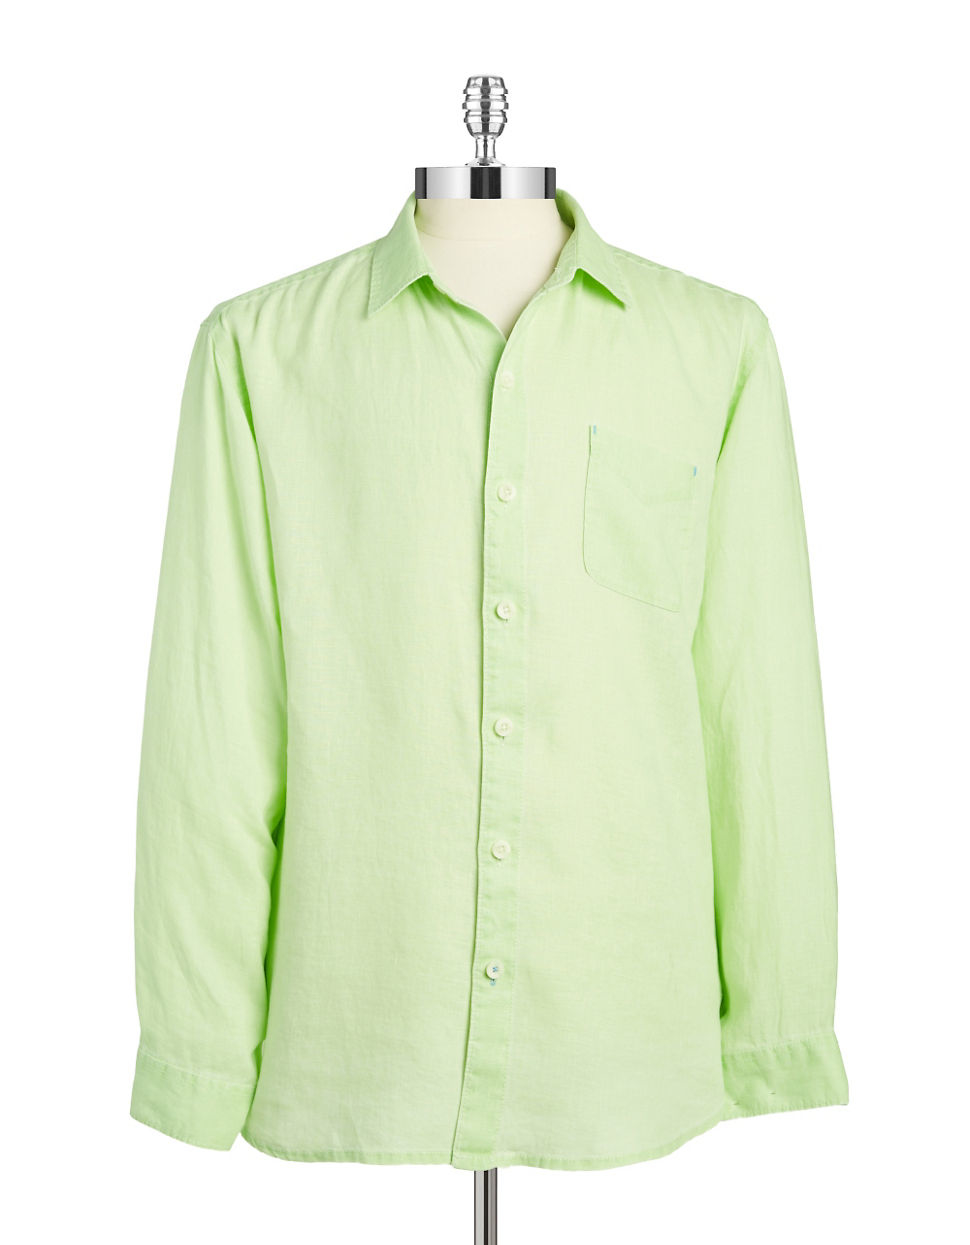 Lyst tommy bahama relax linen shirt in green for men for Where to buy tommy bahama shirts